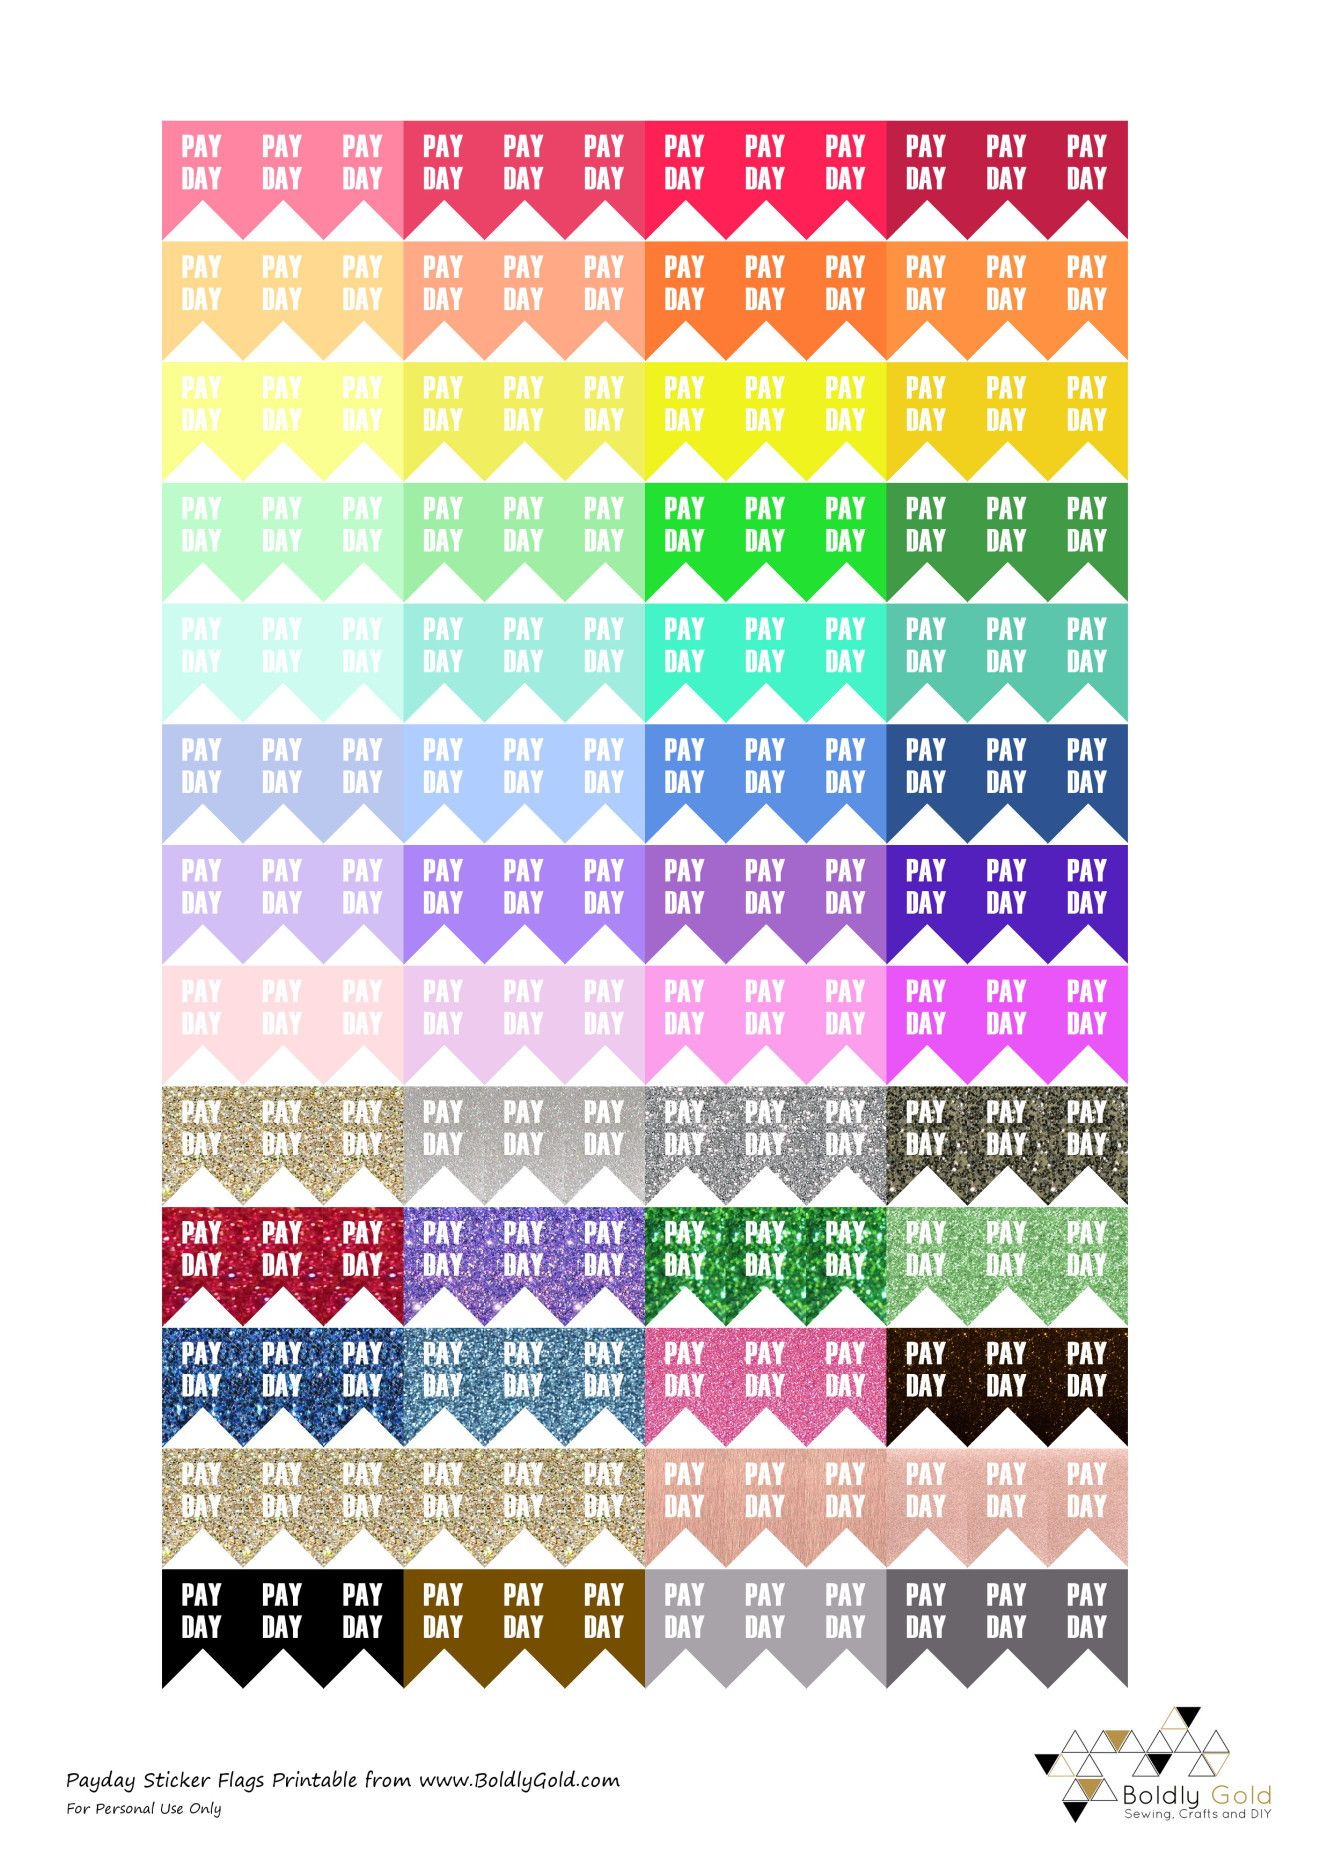 Free Printable Planner Stickers Payday Flags Boldly Gold Planer